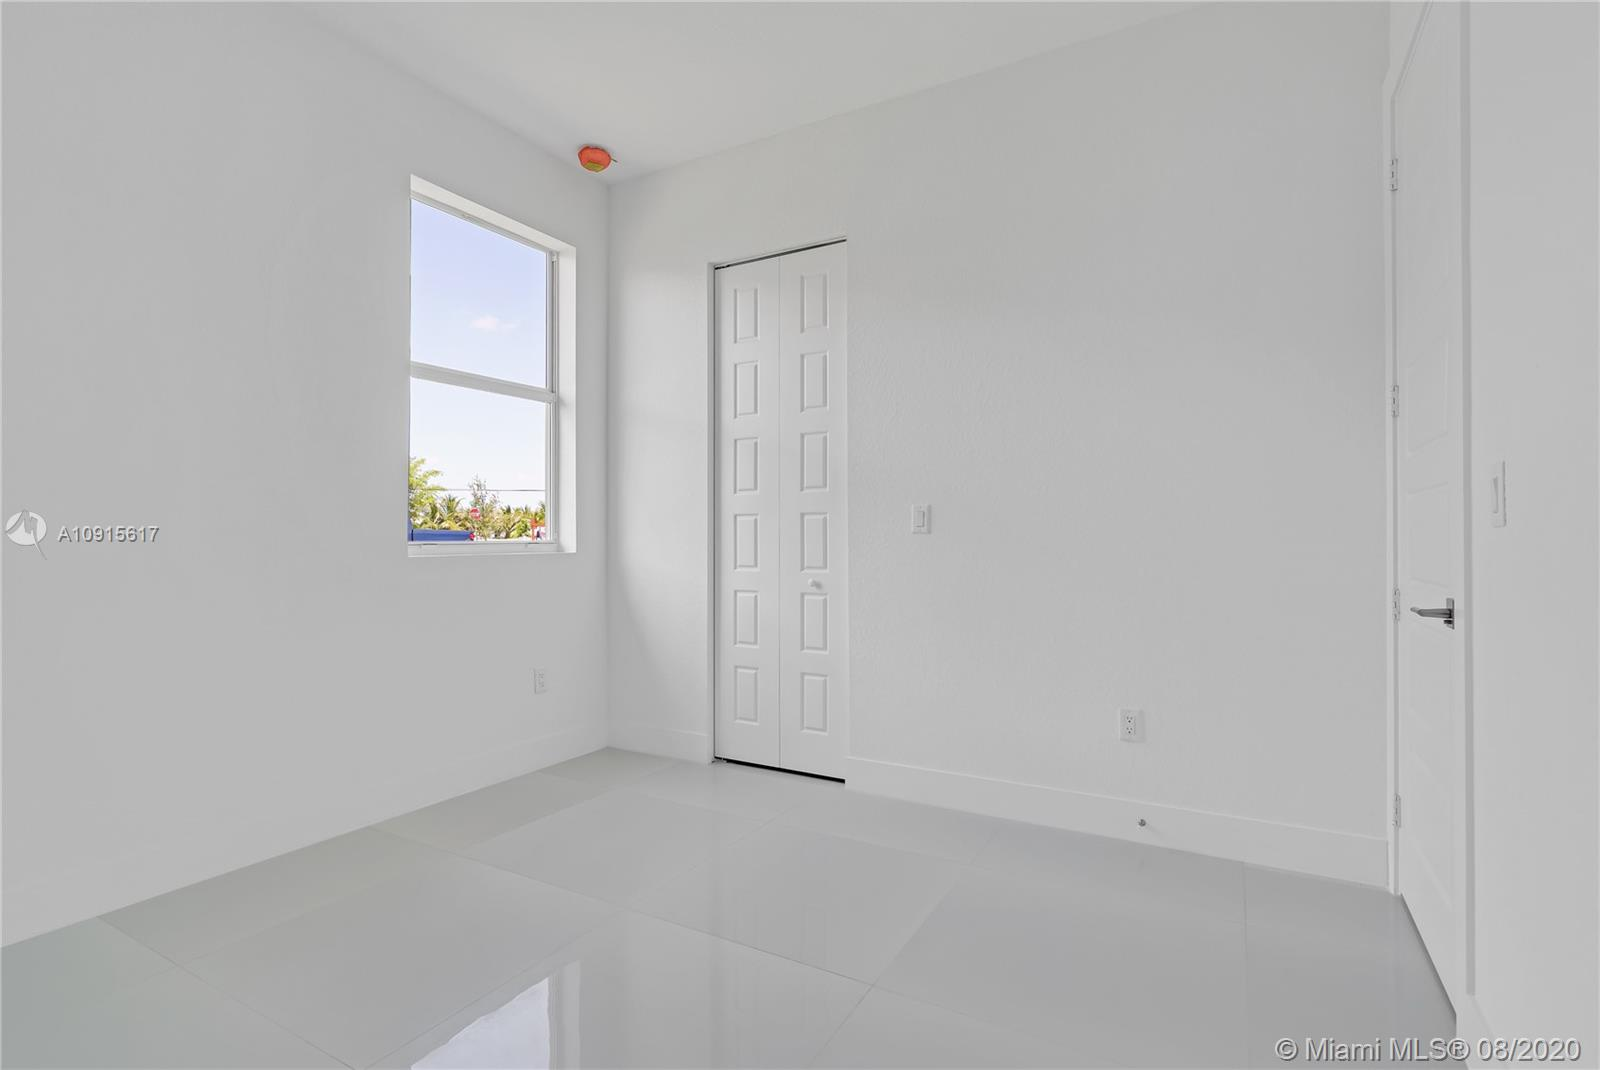 29146 SW 165 TER Property Photo - Homestead, FL real estate listing